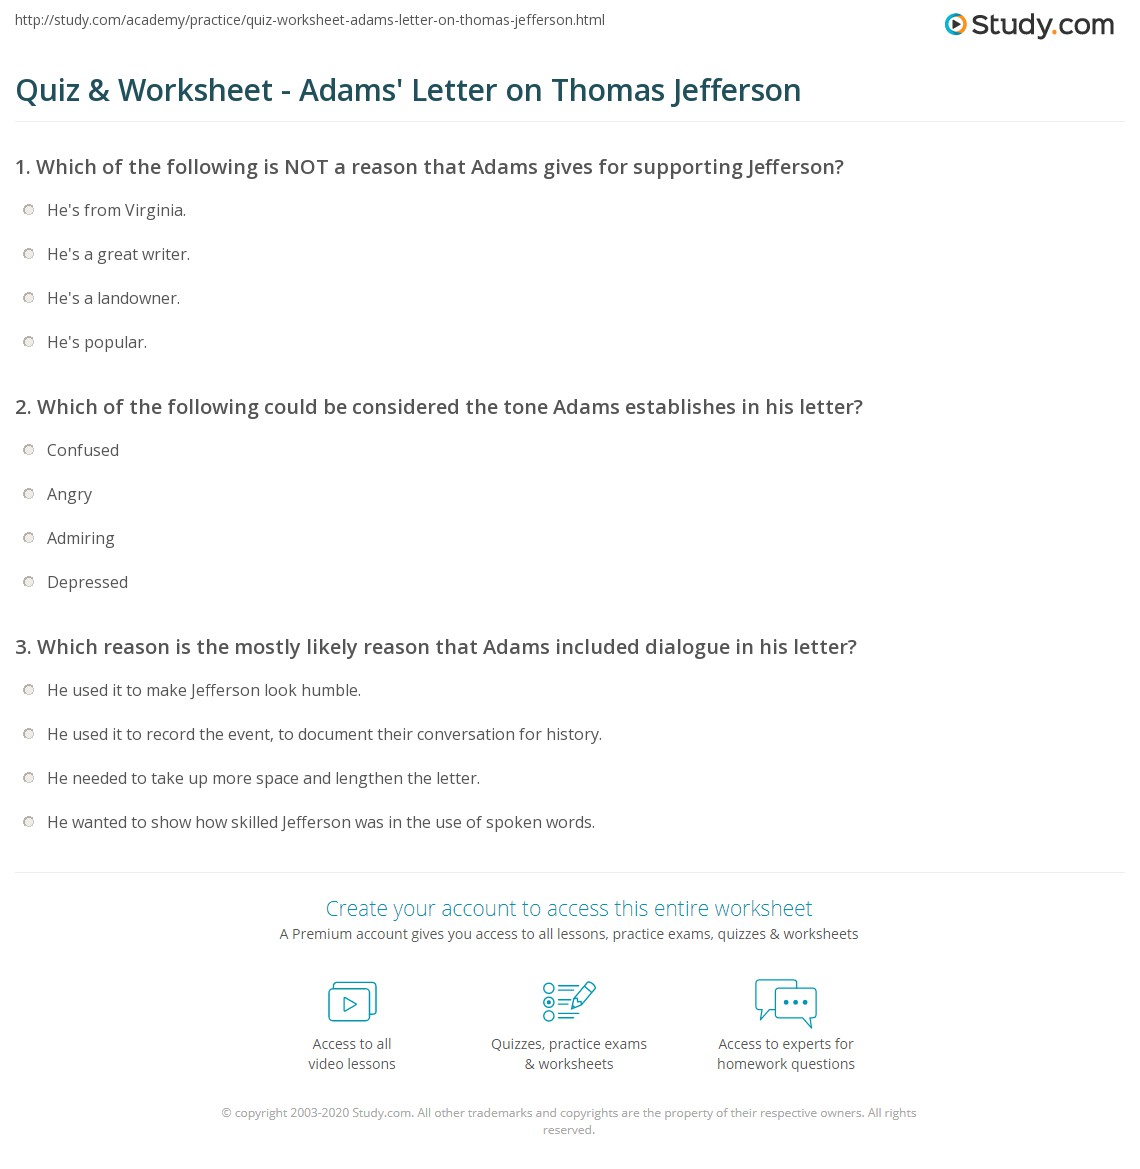 quiz worksheet adams letter on thomas jefferson com print john adams letter on thomas jefferson summary analysis worksheet